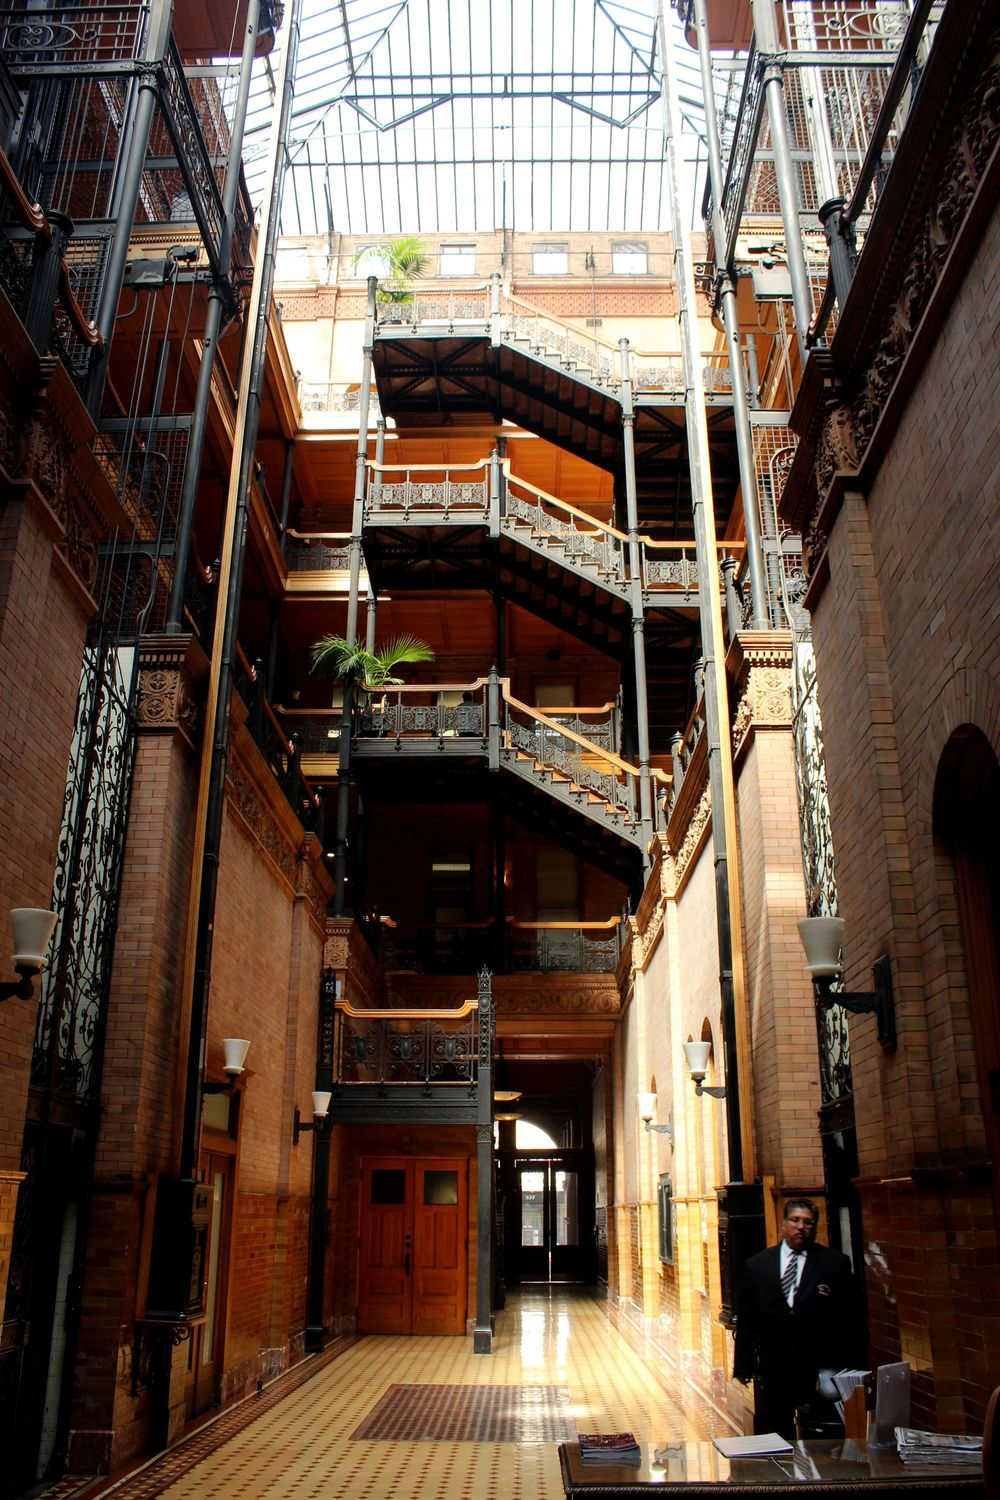 Bradbury Building, Los Angeles, CA, USA